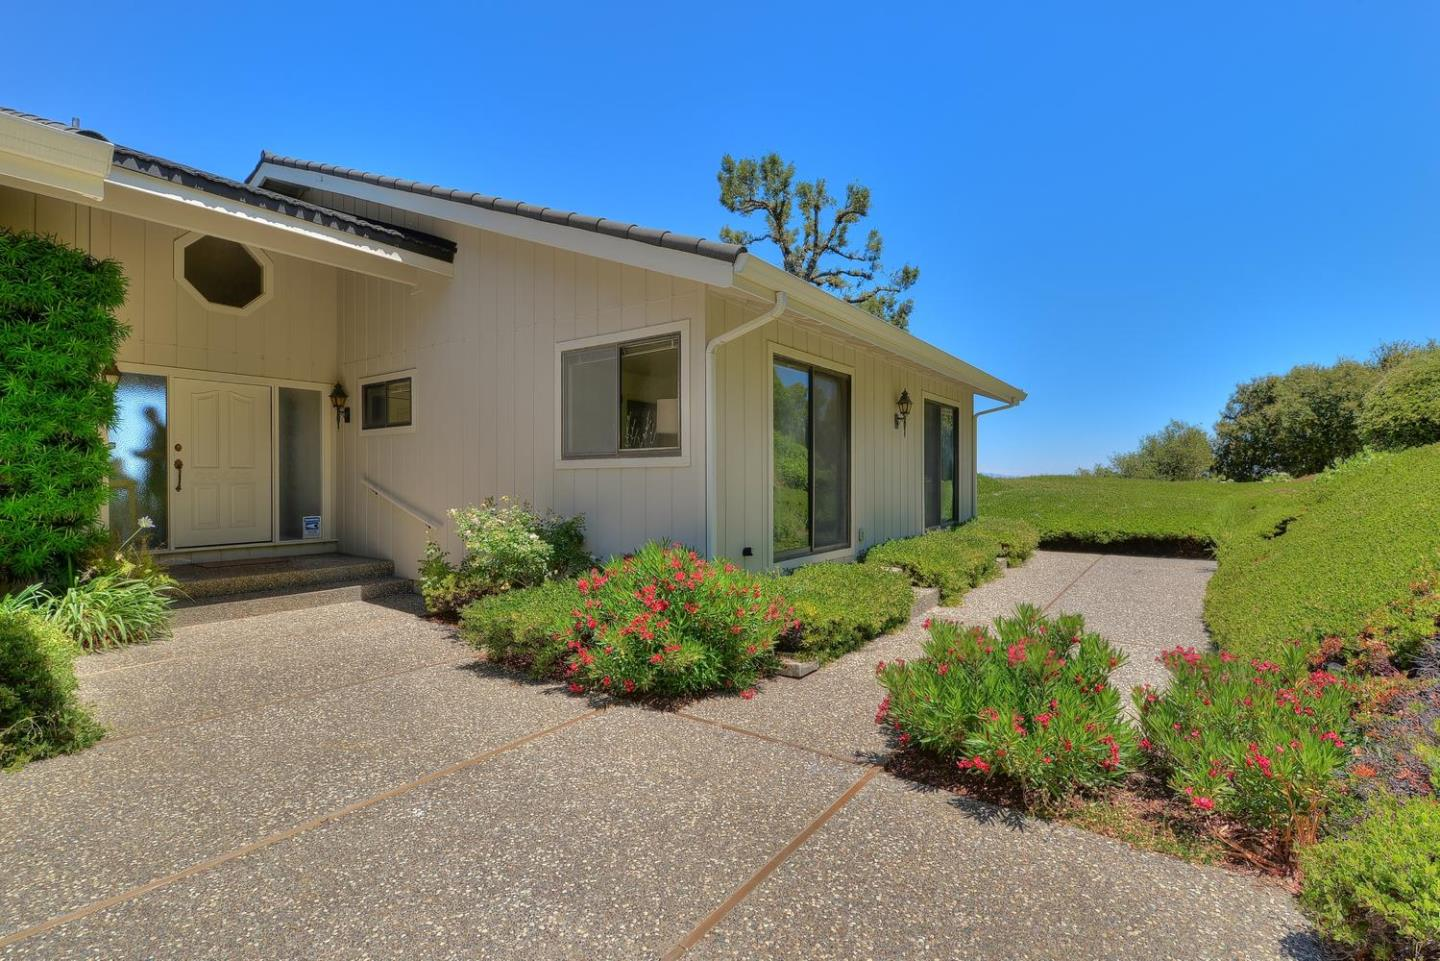 Additional photo for property listing at 16978 Bohlman Road  Saratoga, Kalifornien 95070 Vereinigte Staaten